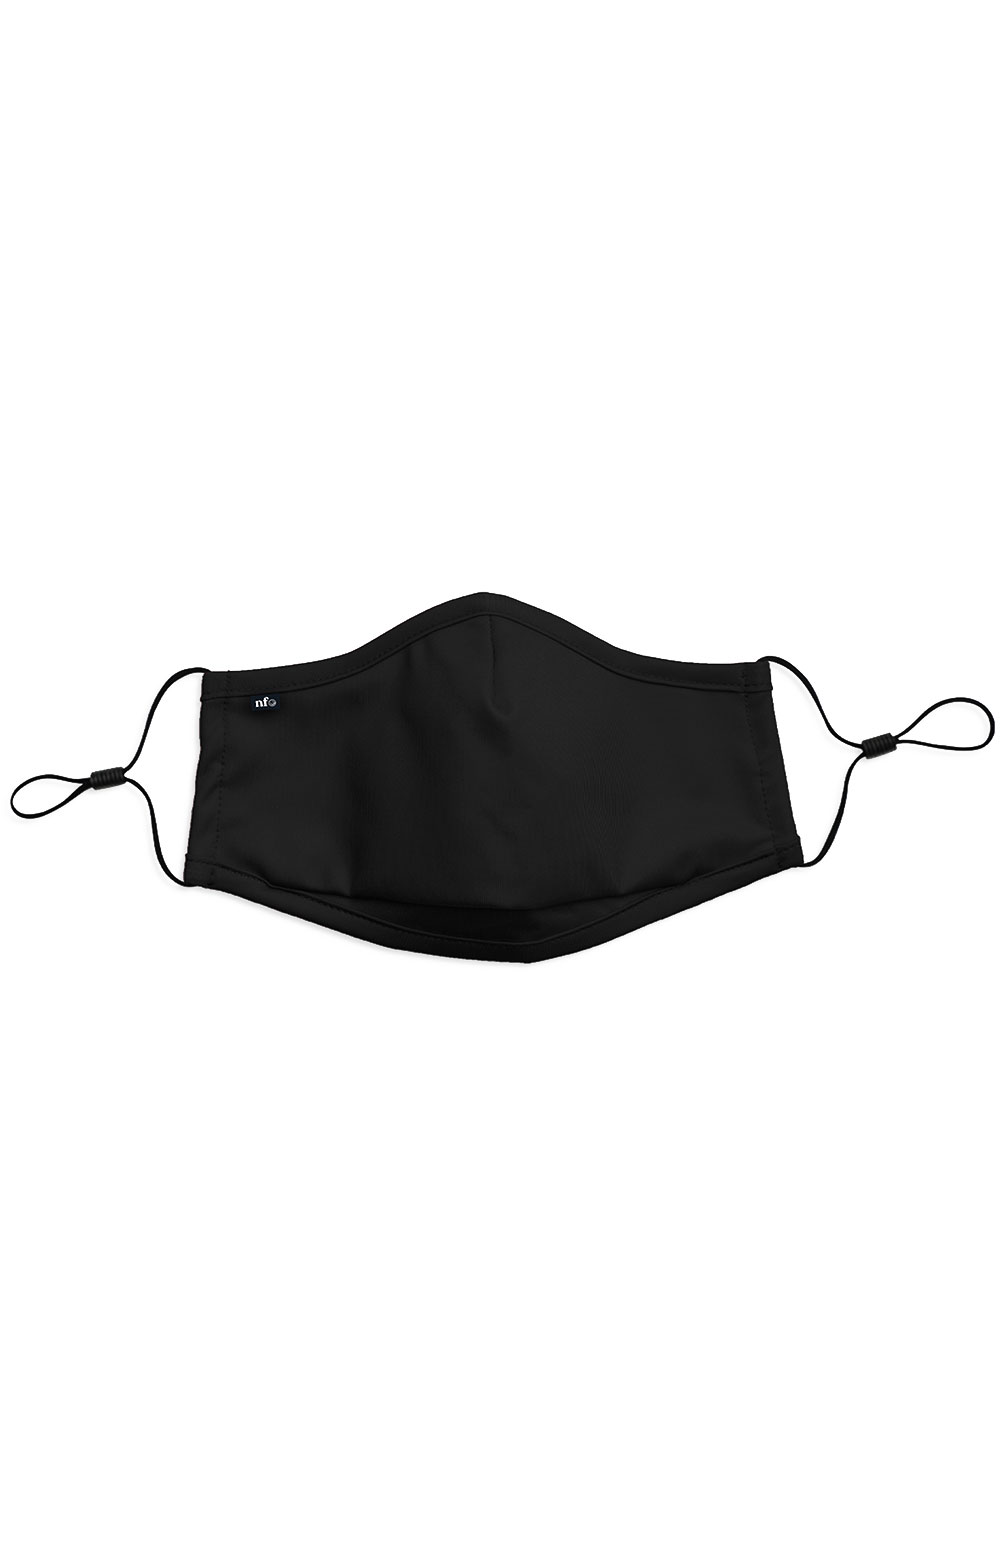 Kids Anti Bacterial Knit Face Mask - Black